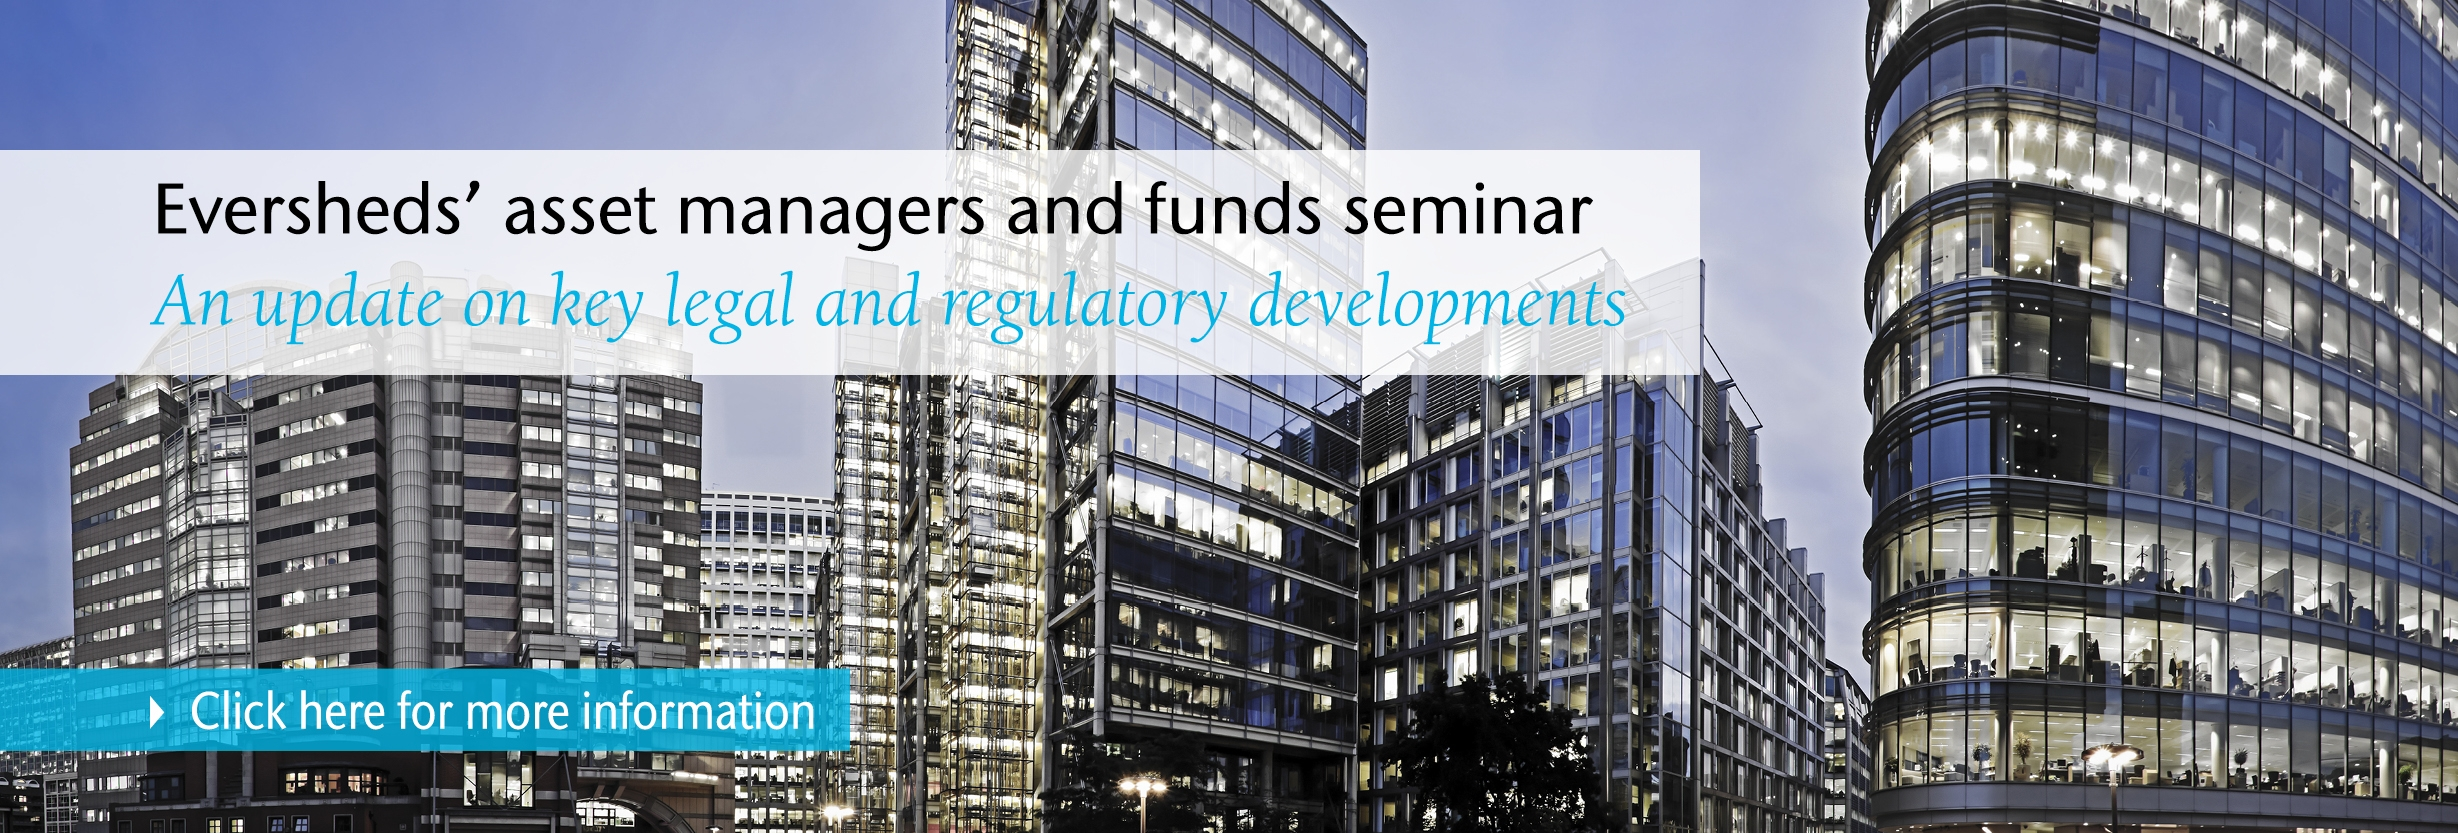 Asset managers seminar - click here for more info